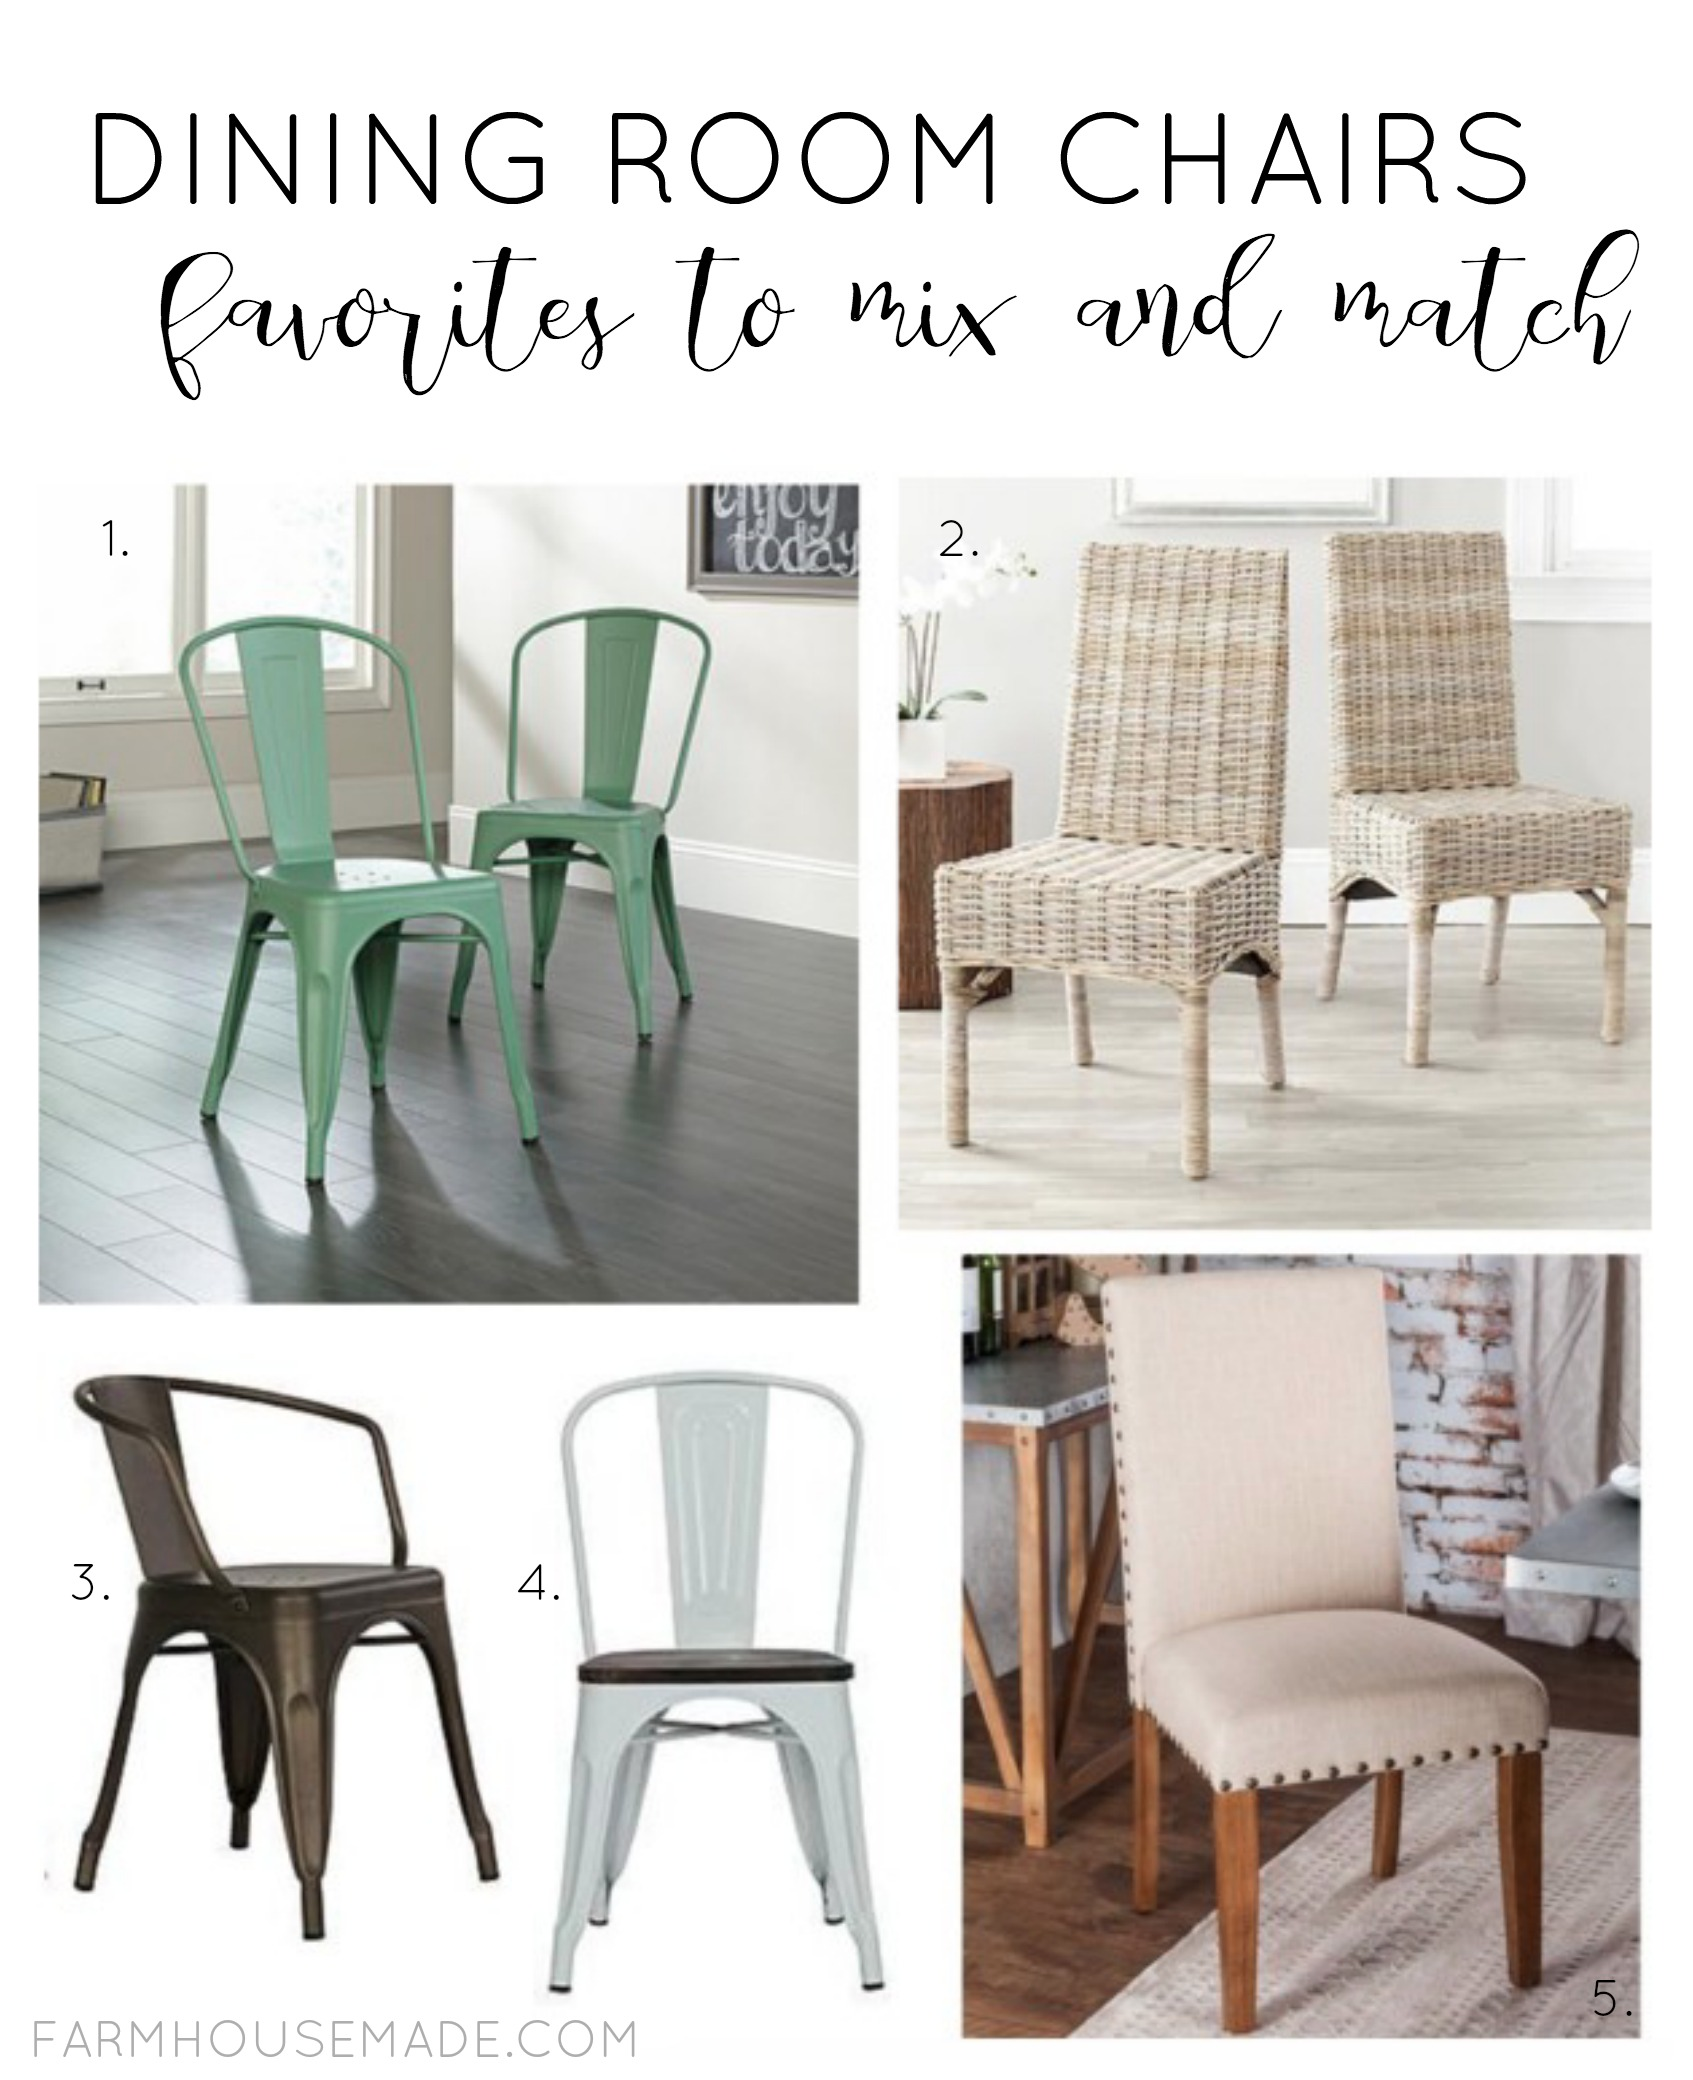 Mixing Dining Room Chairs Dining Room Chairs To Mix And Match F A R M H O U S E